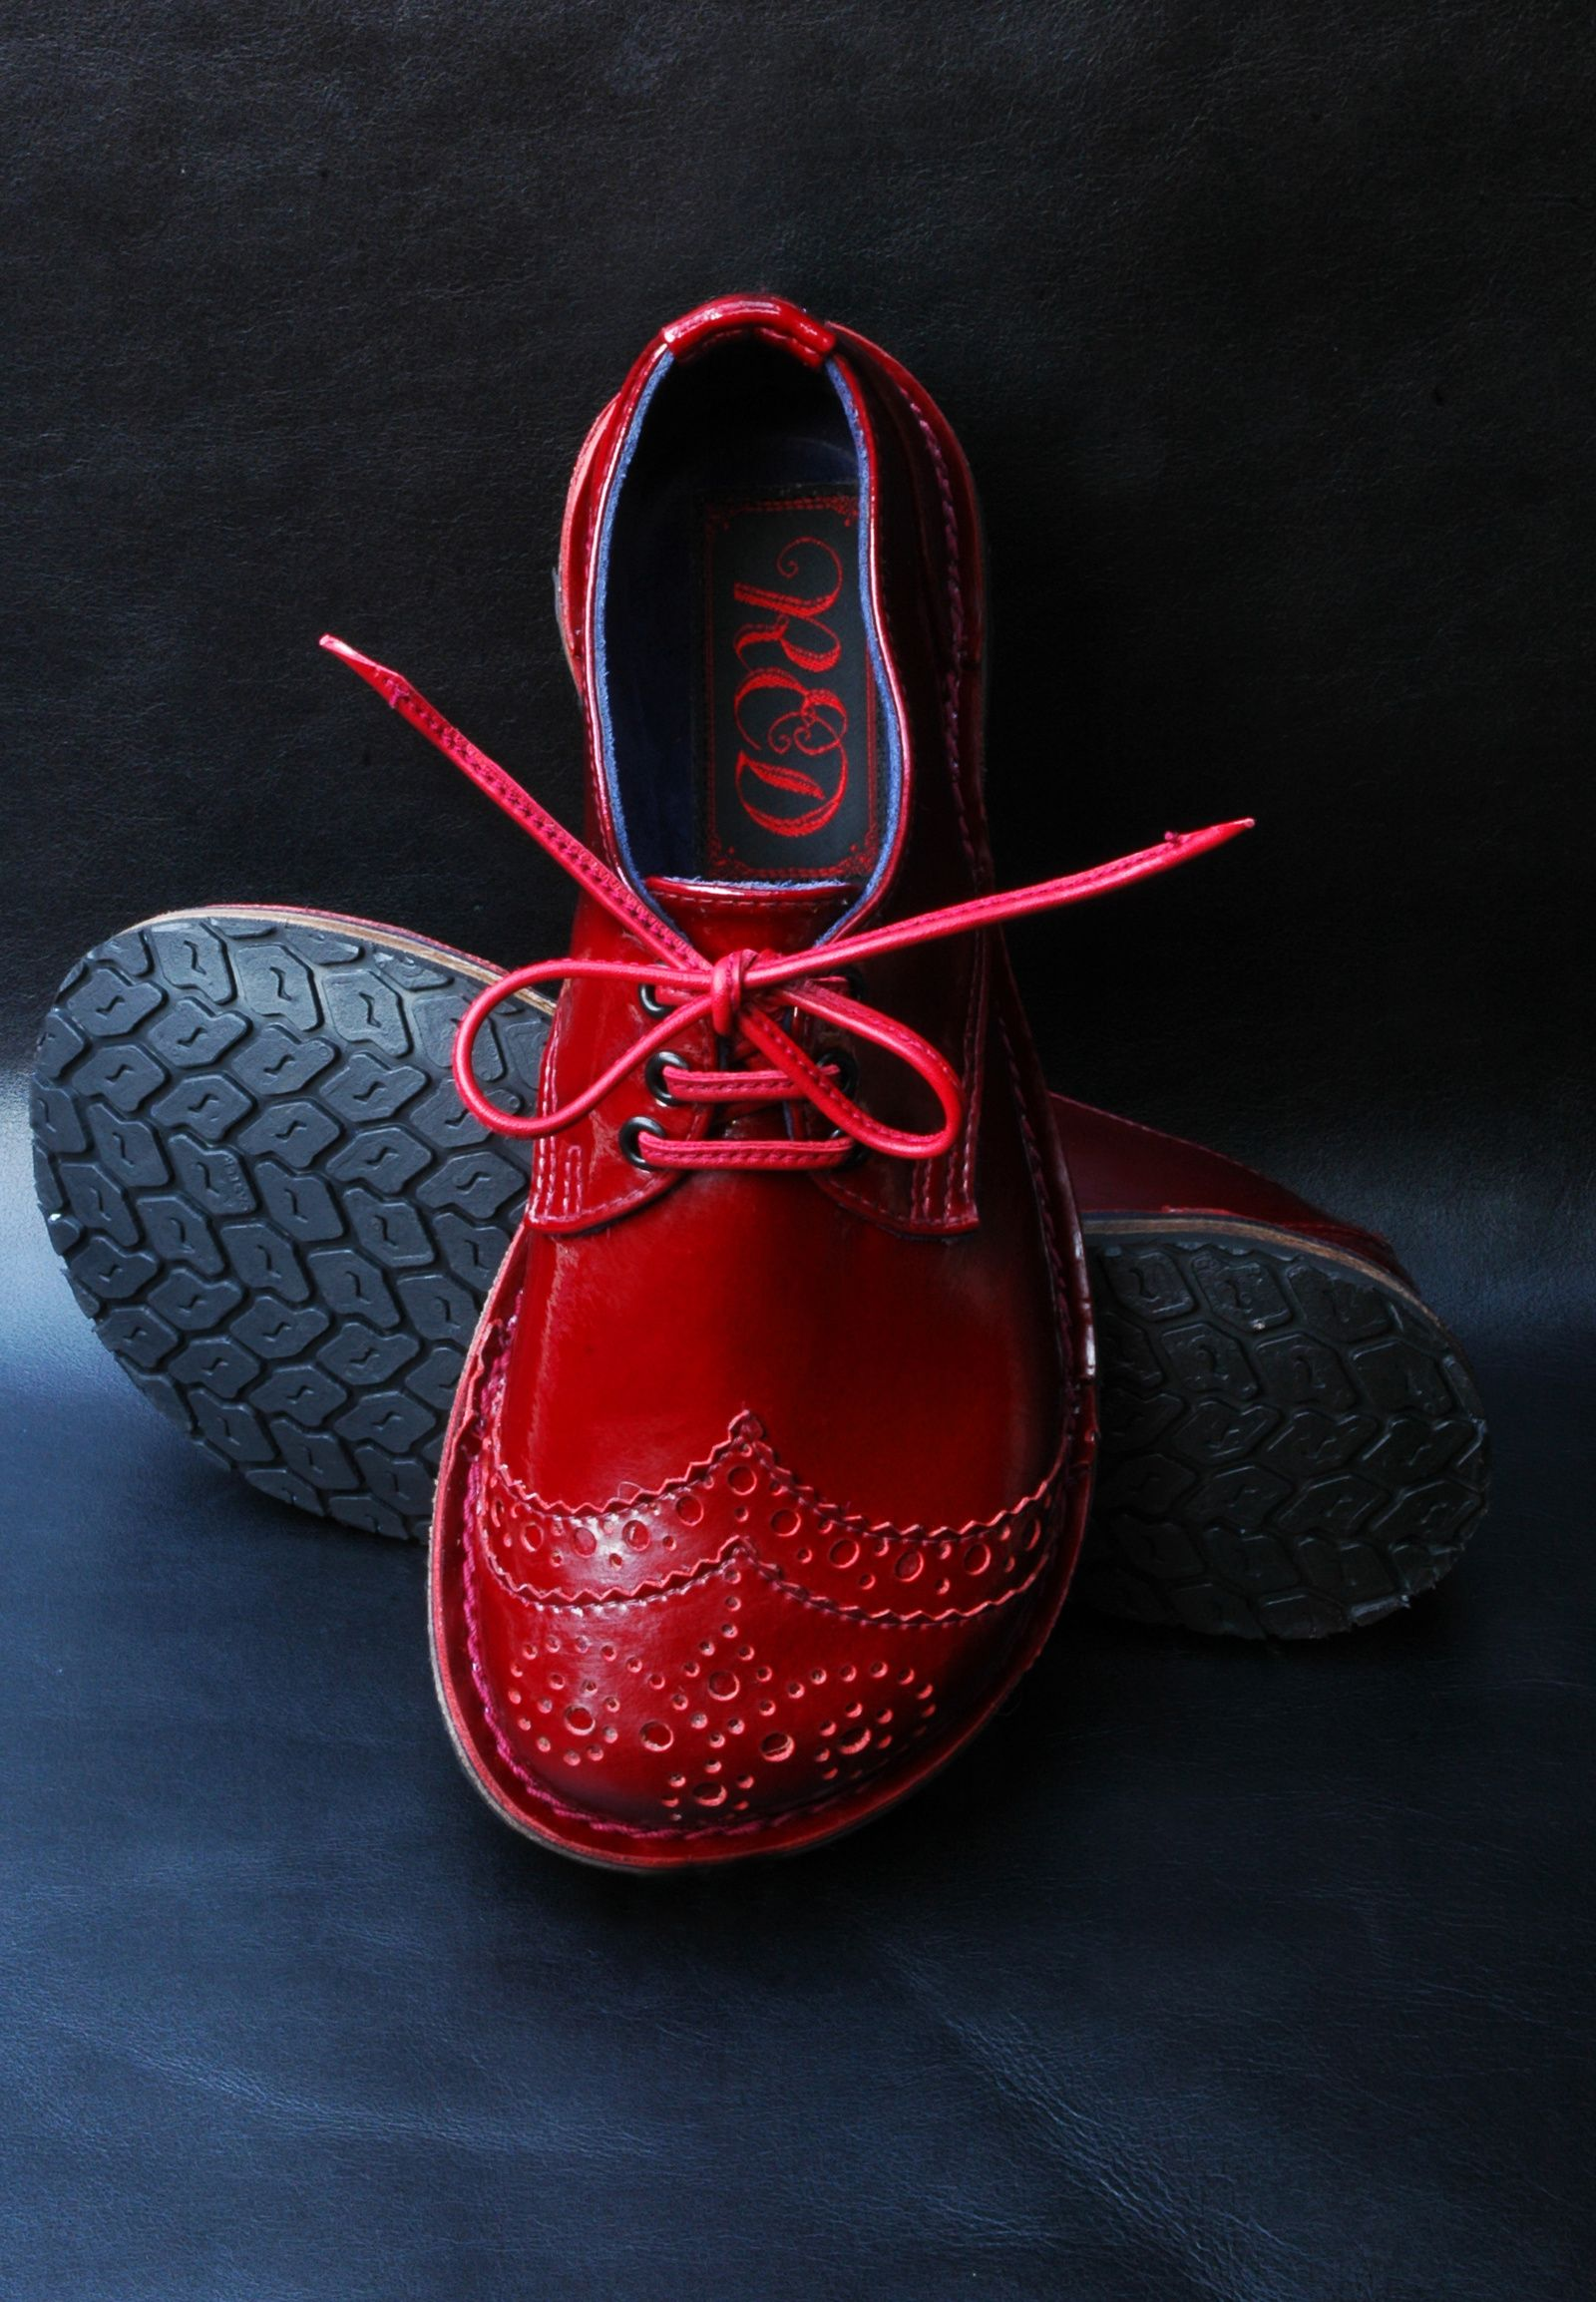 Ruth Emily Davey SHOES (With images) | Shoe boots, Sock